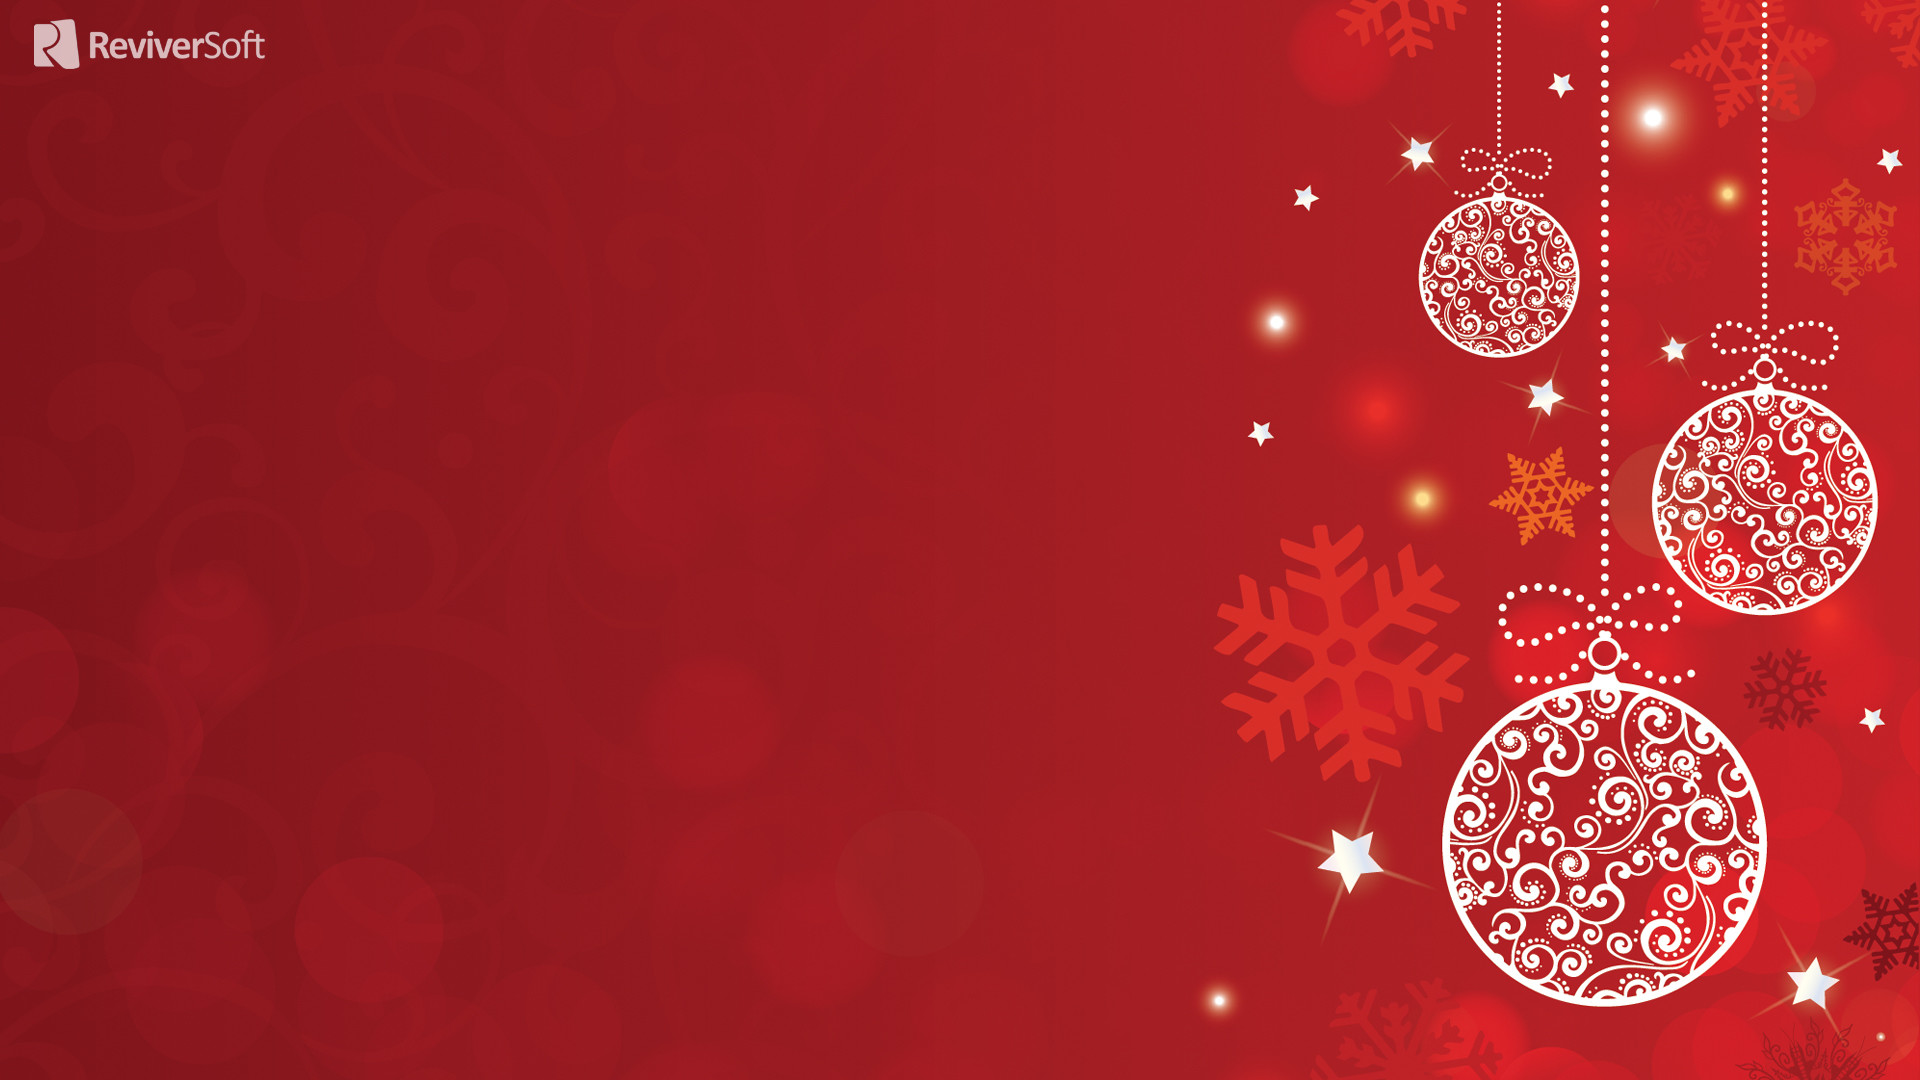 Christmas decorations on a red background on Christmas wallpapers .